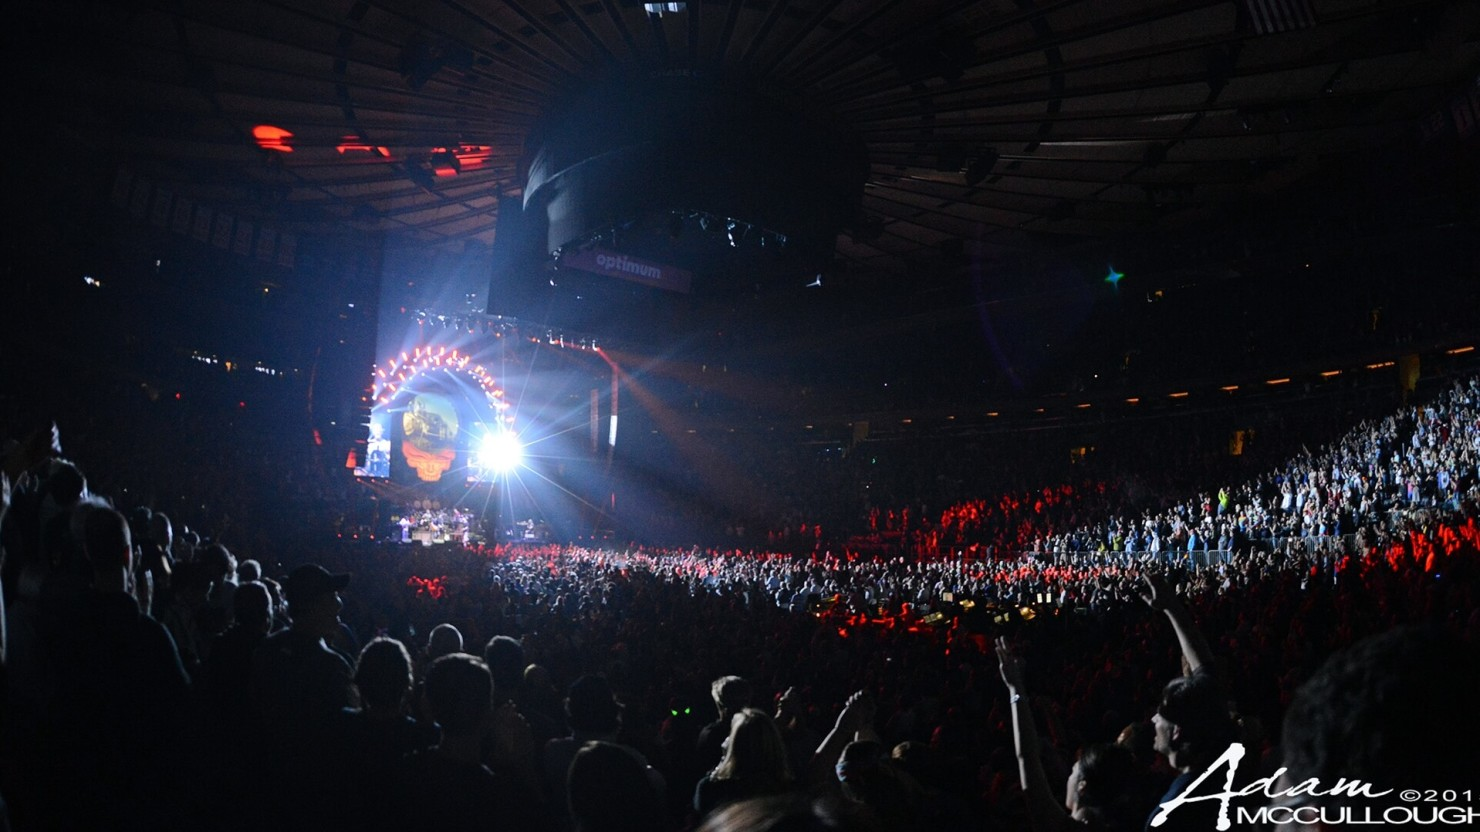 Dead Company Play Free Show At Madison Square Garden